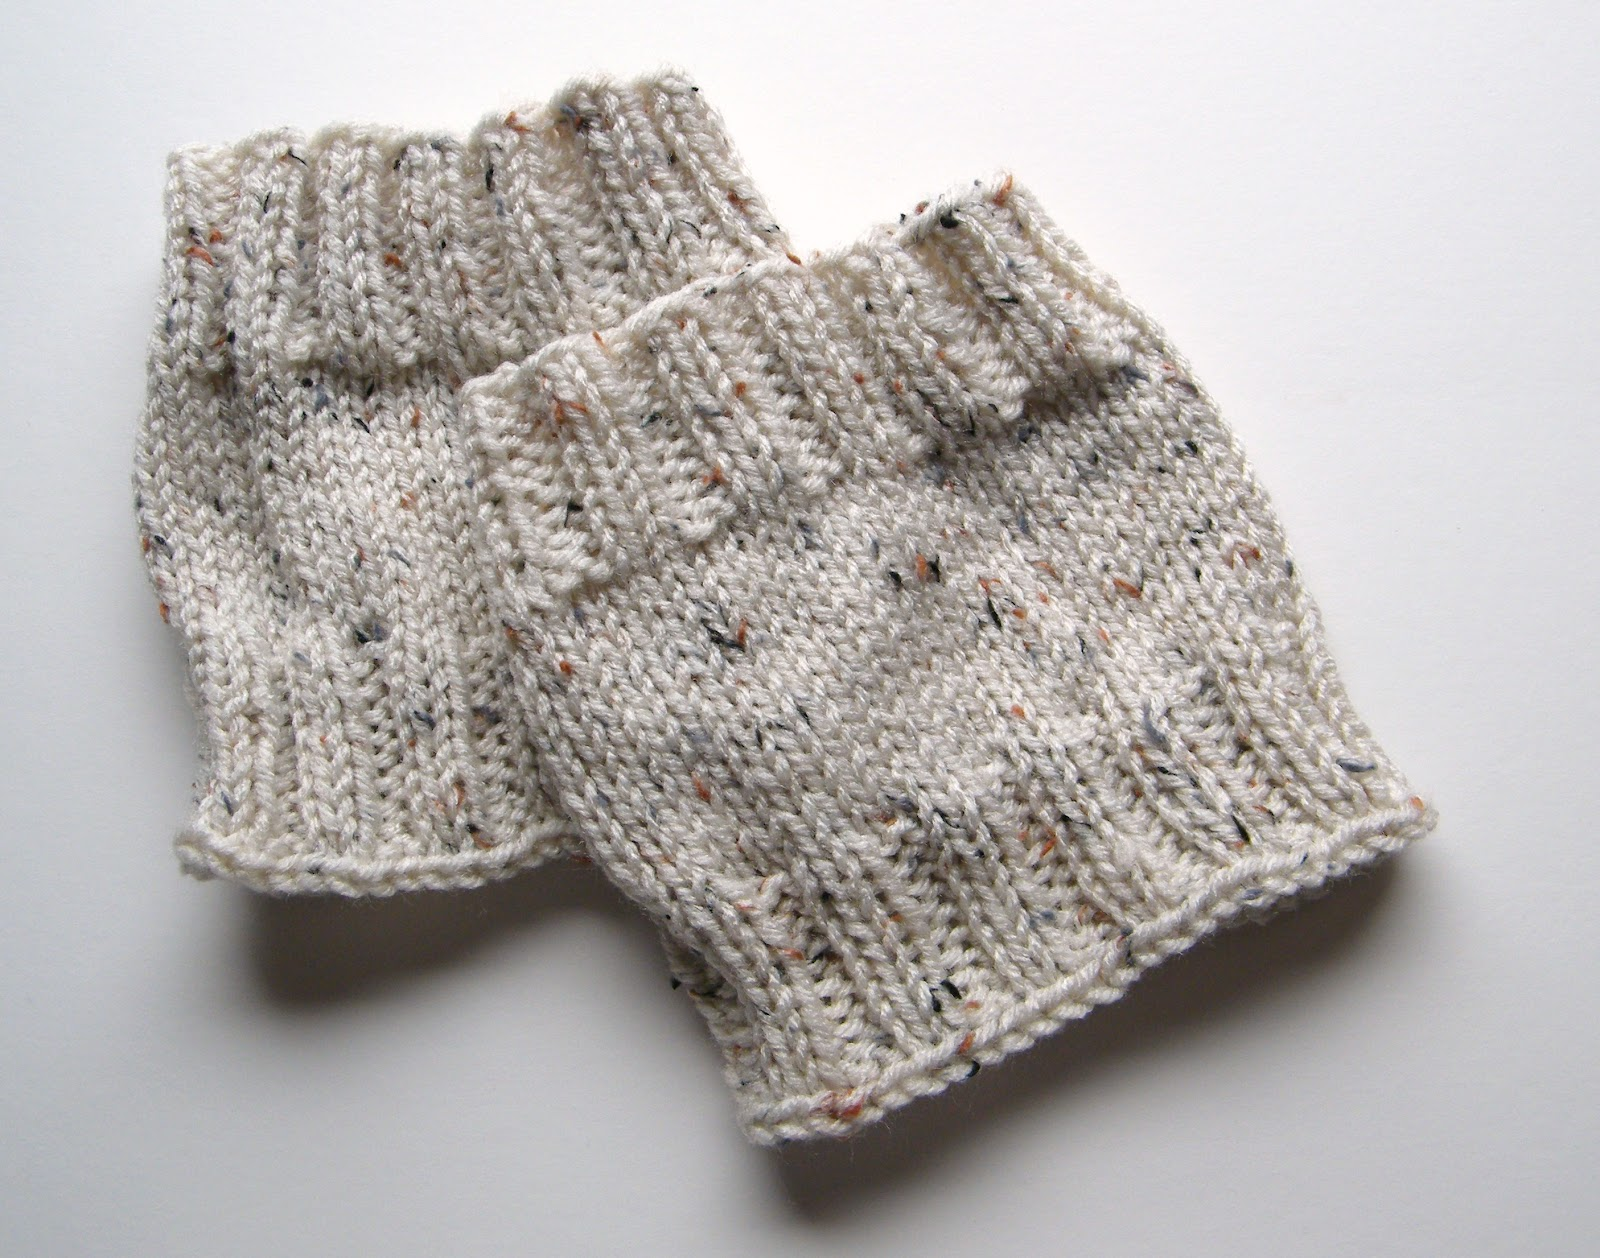 Free Knitting Pattern For Boot Cuffs : Knit Boot Cuffs Pattern Free myideasbedroom.com